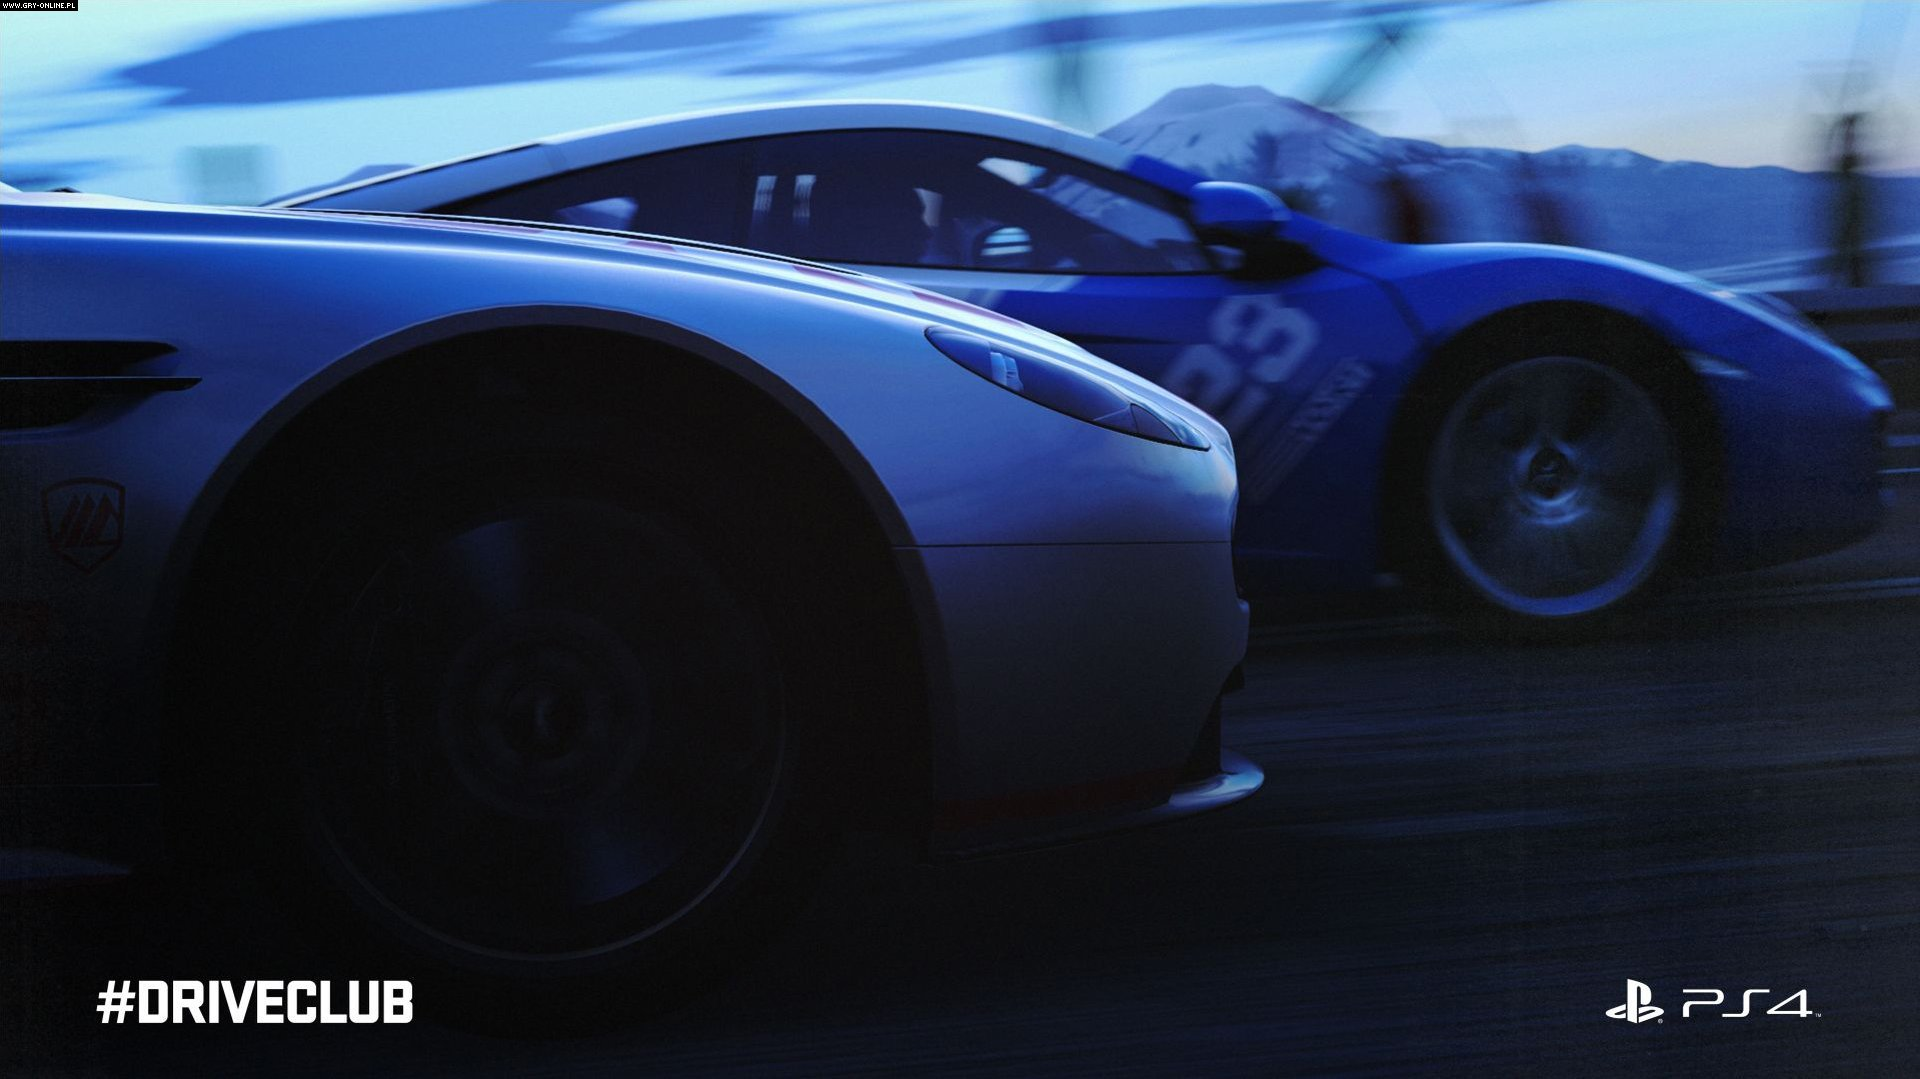 DriveClub PS4 Gry Screen 35/119, Evolution Studios, Sony Interactive Entertainment